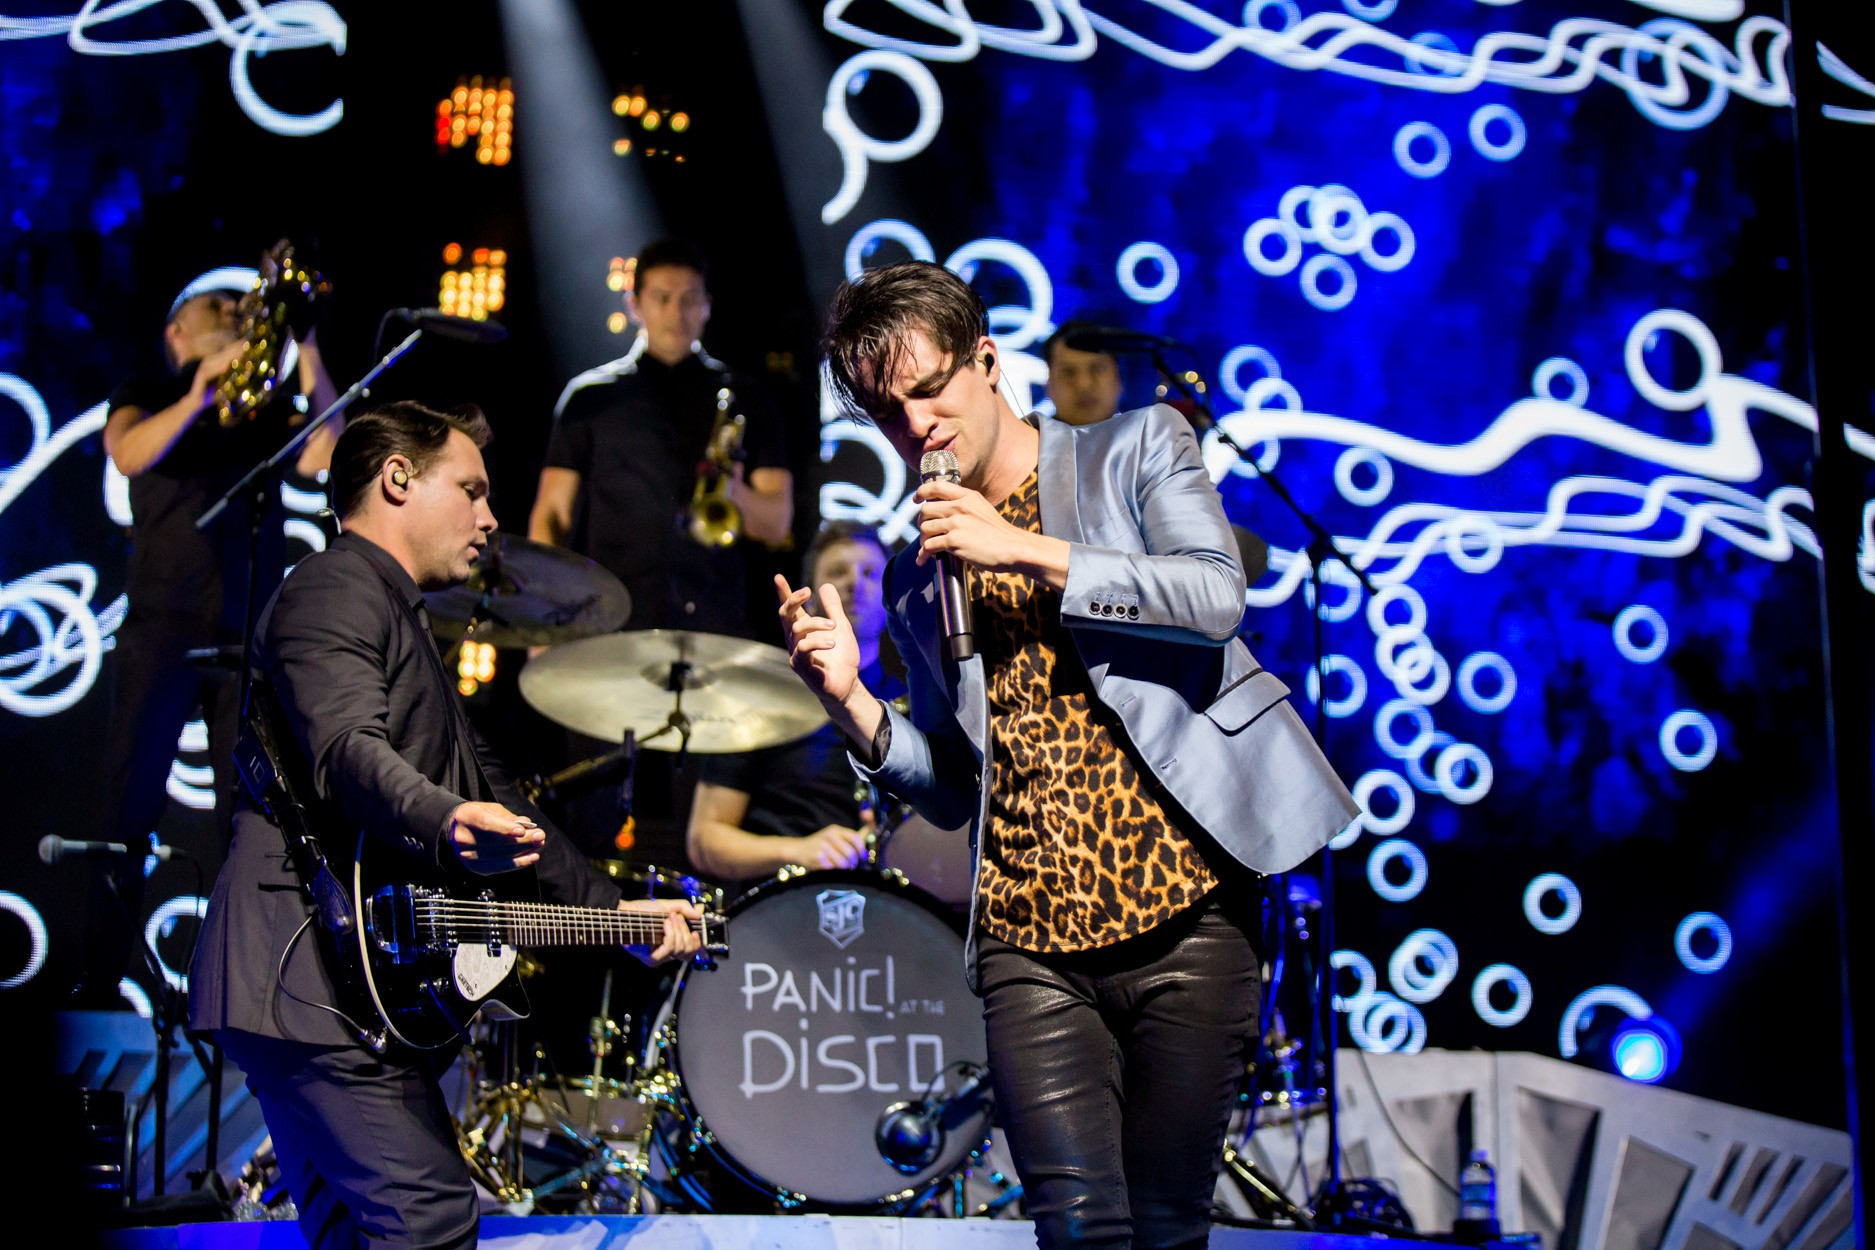 Panic! at the Disco: Photo by Melissa Fossum